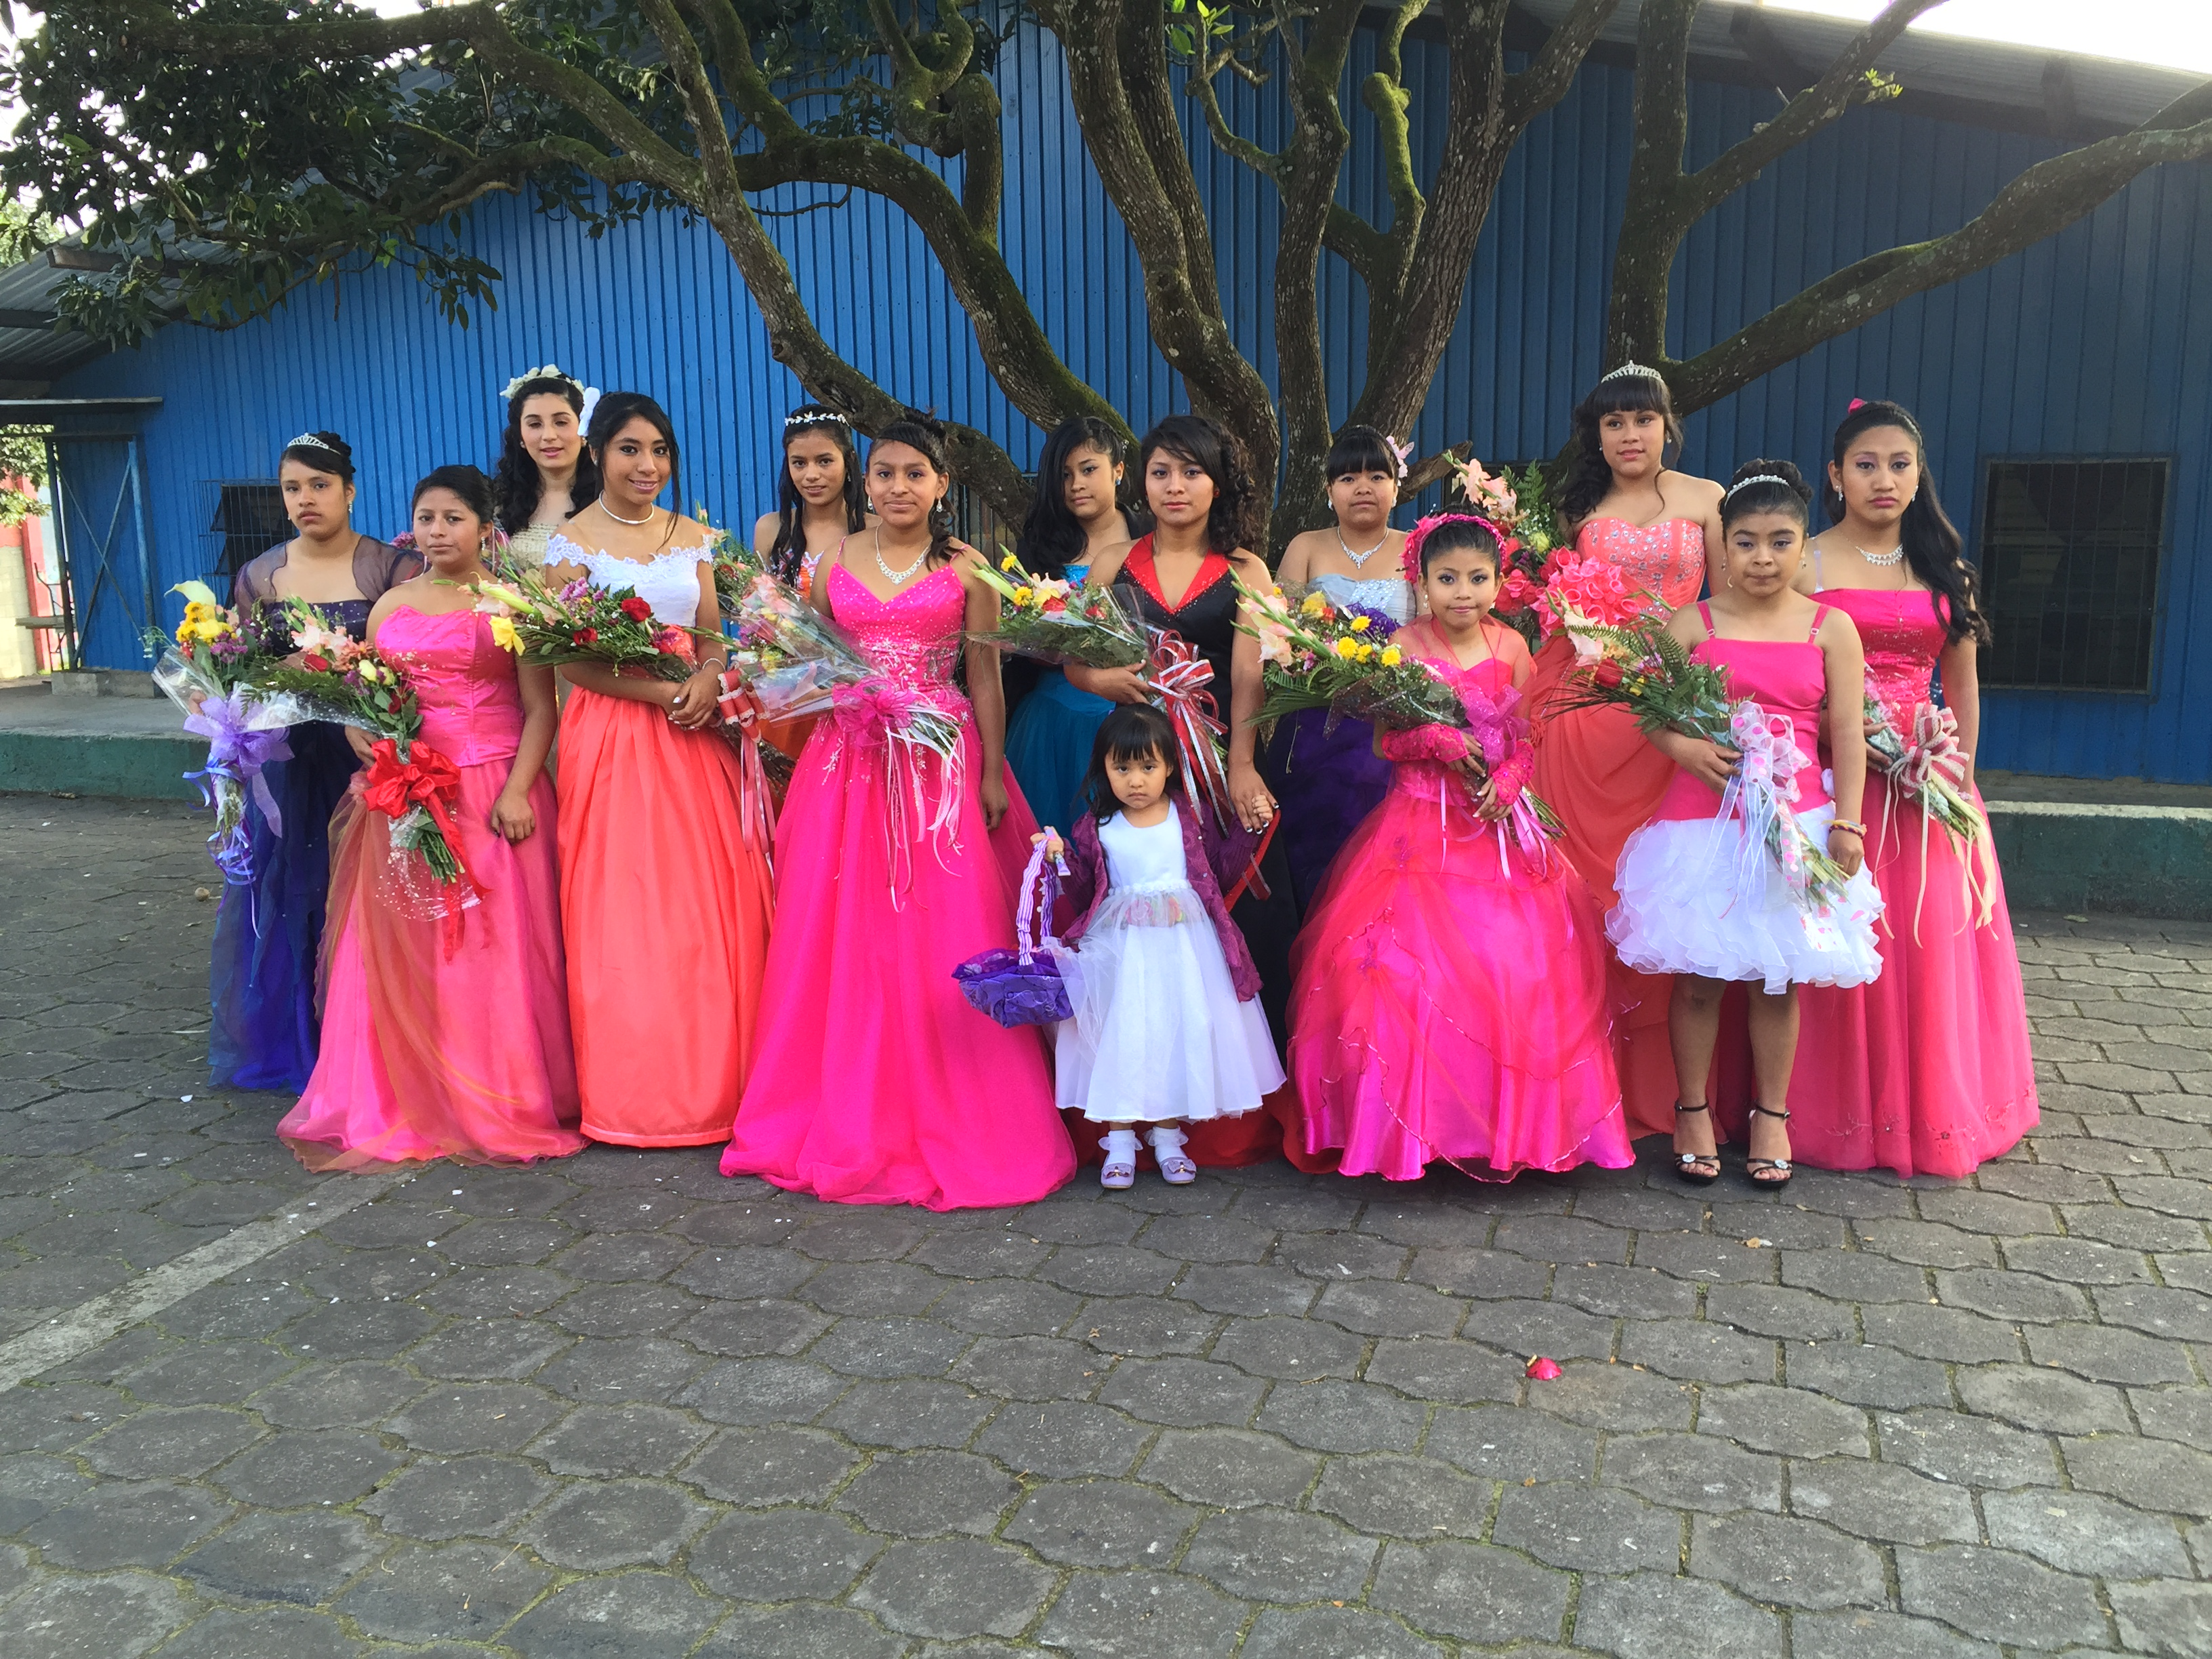 The quinceaneras were beautiful